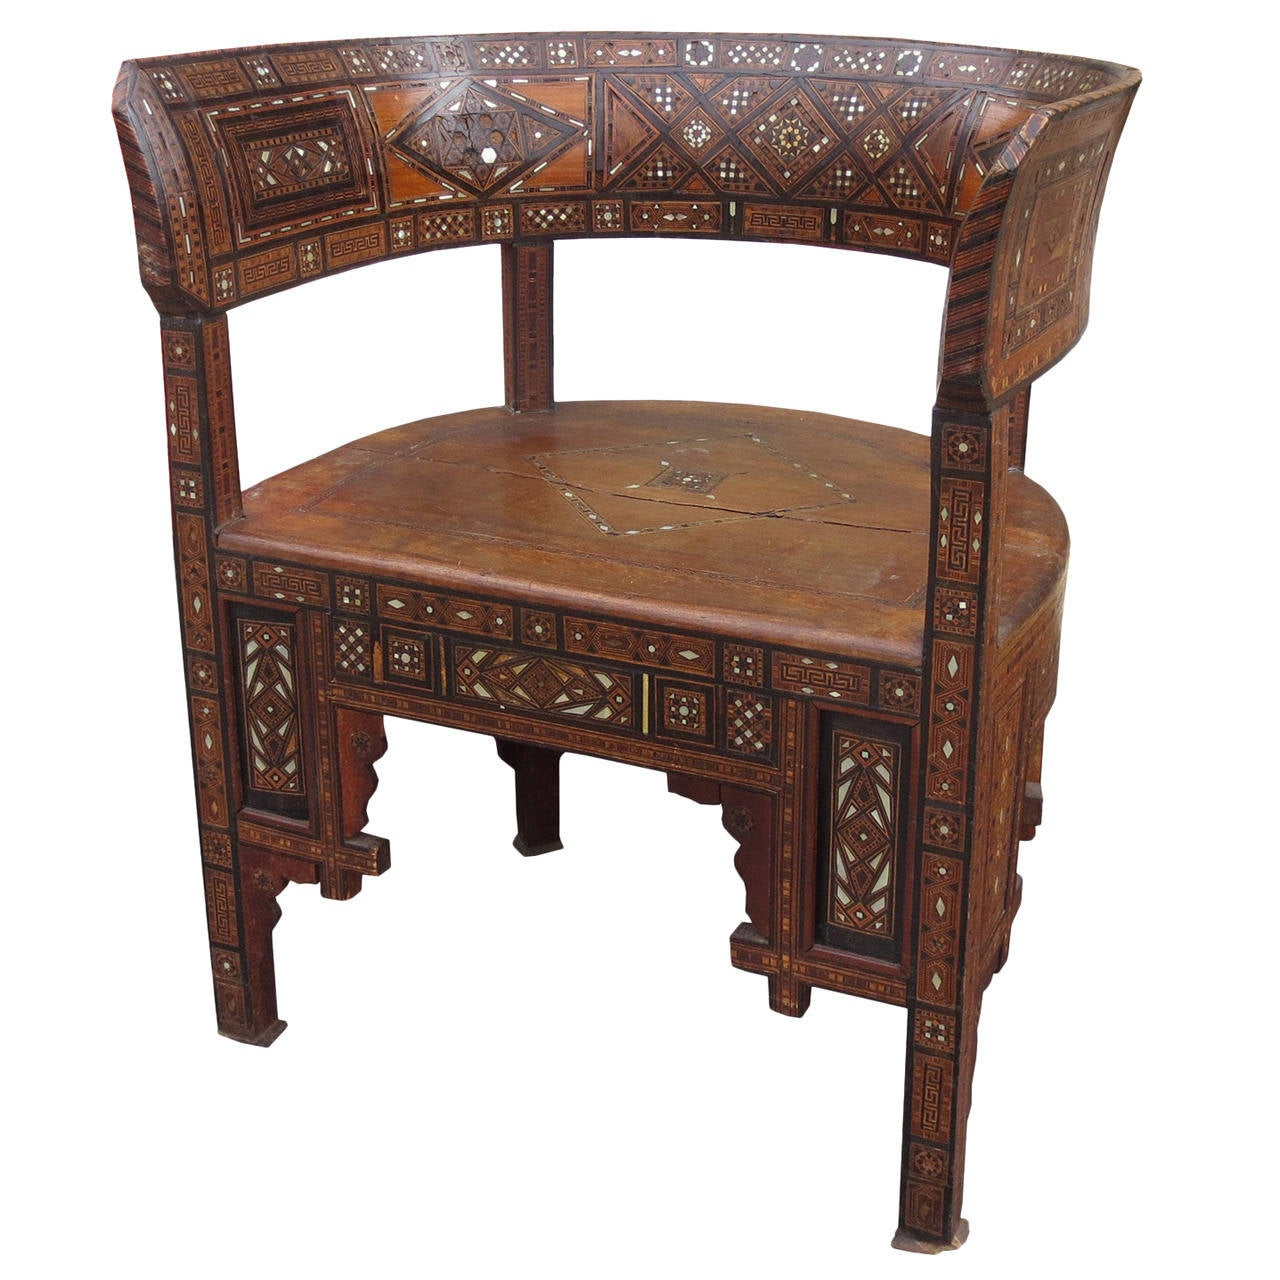 Exotic Wood Chairs ~ Th century syrian barrel chair exotic wood circa